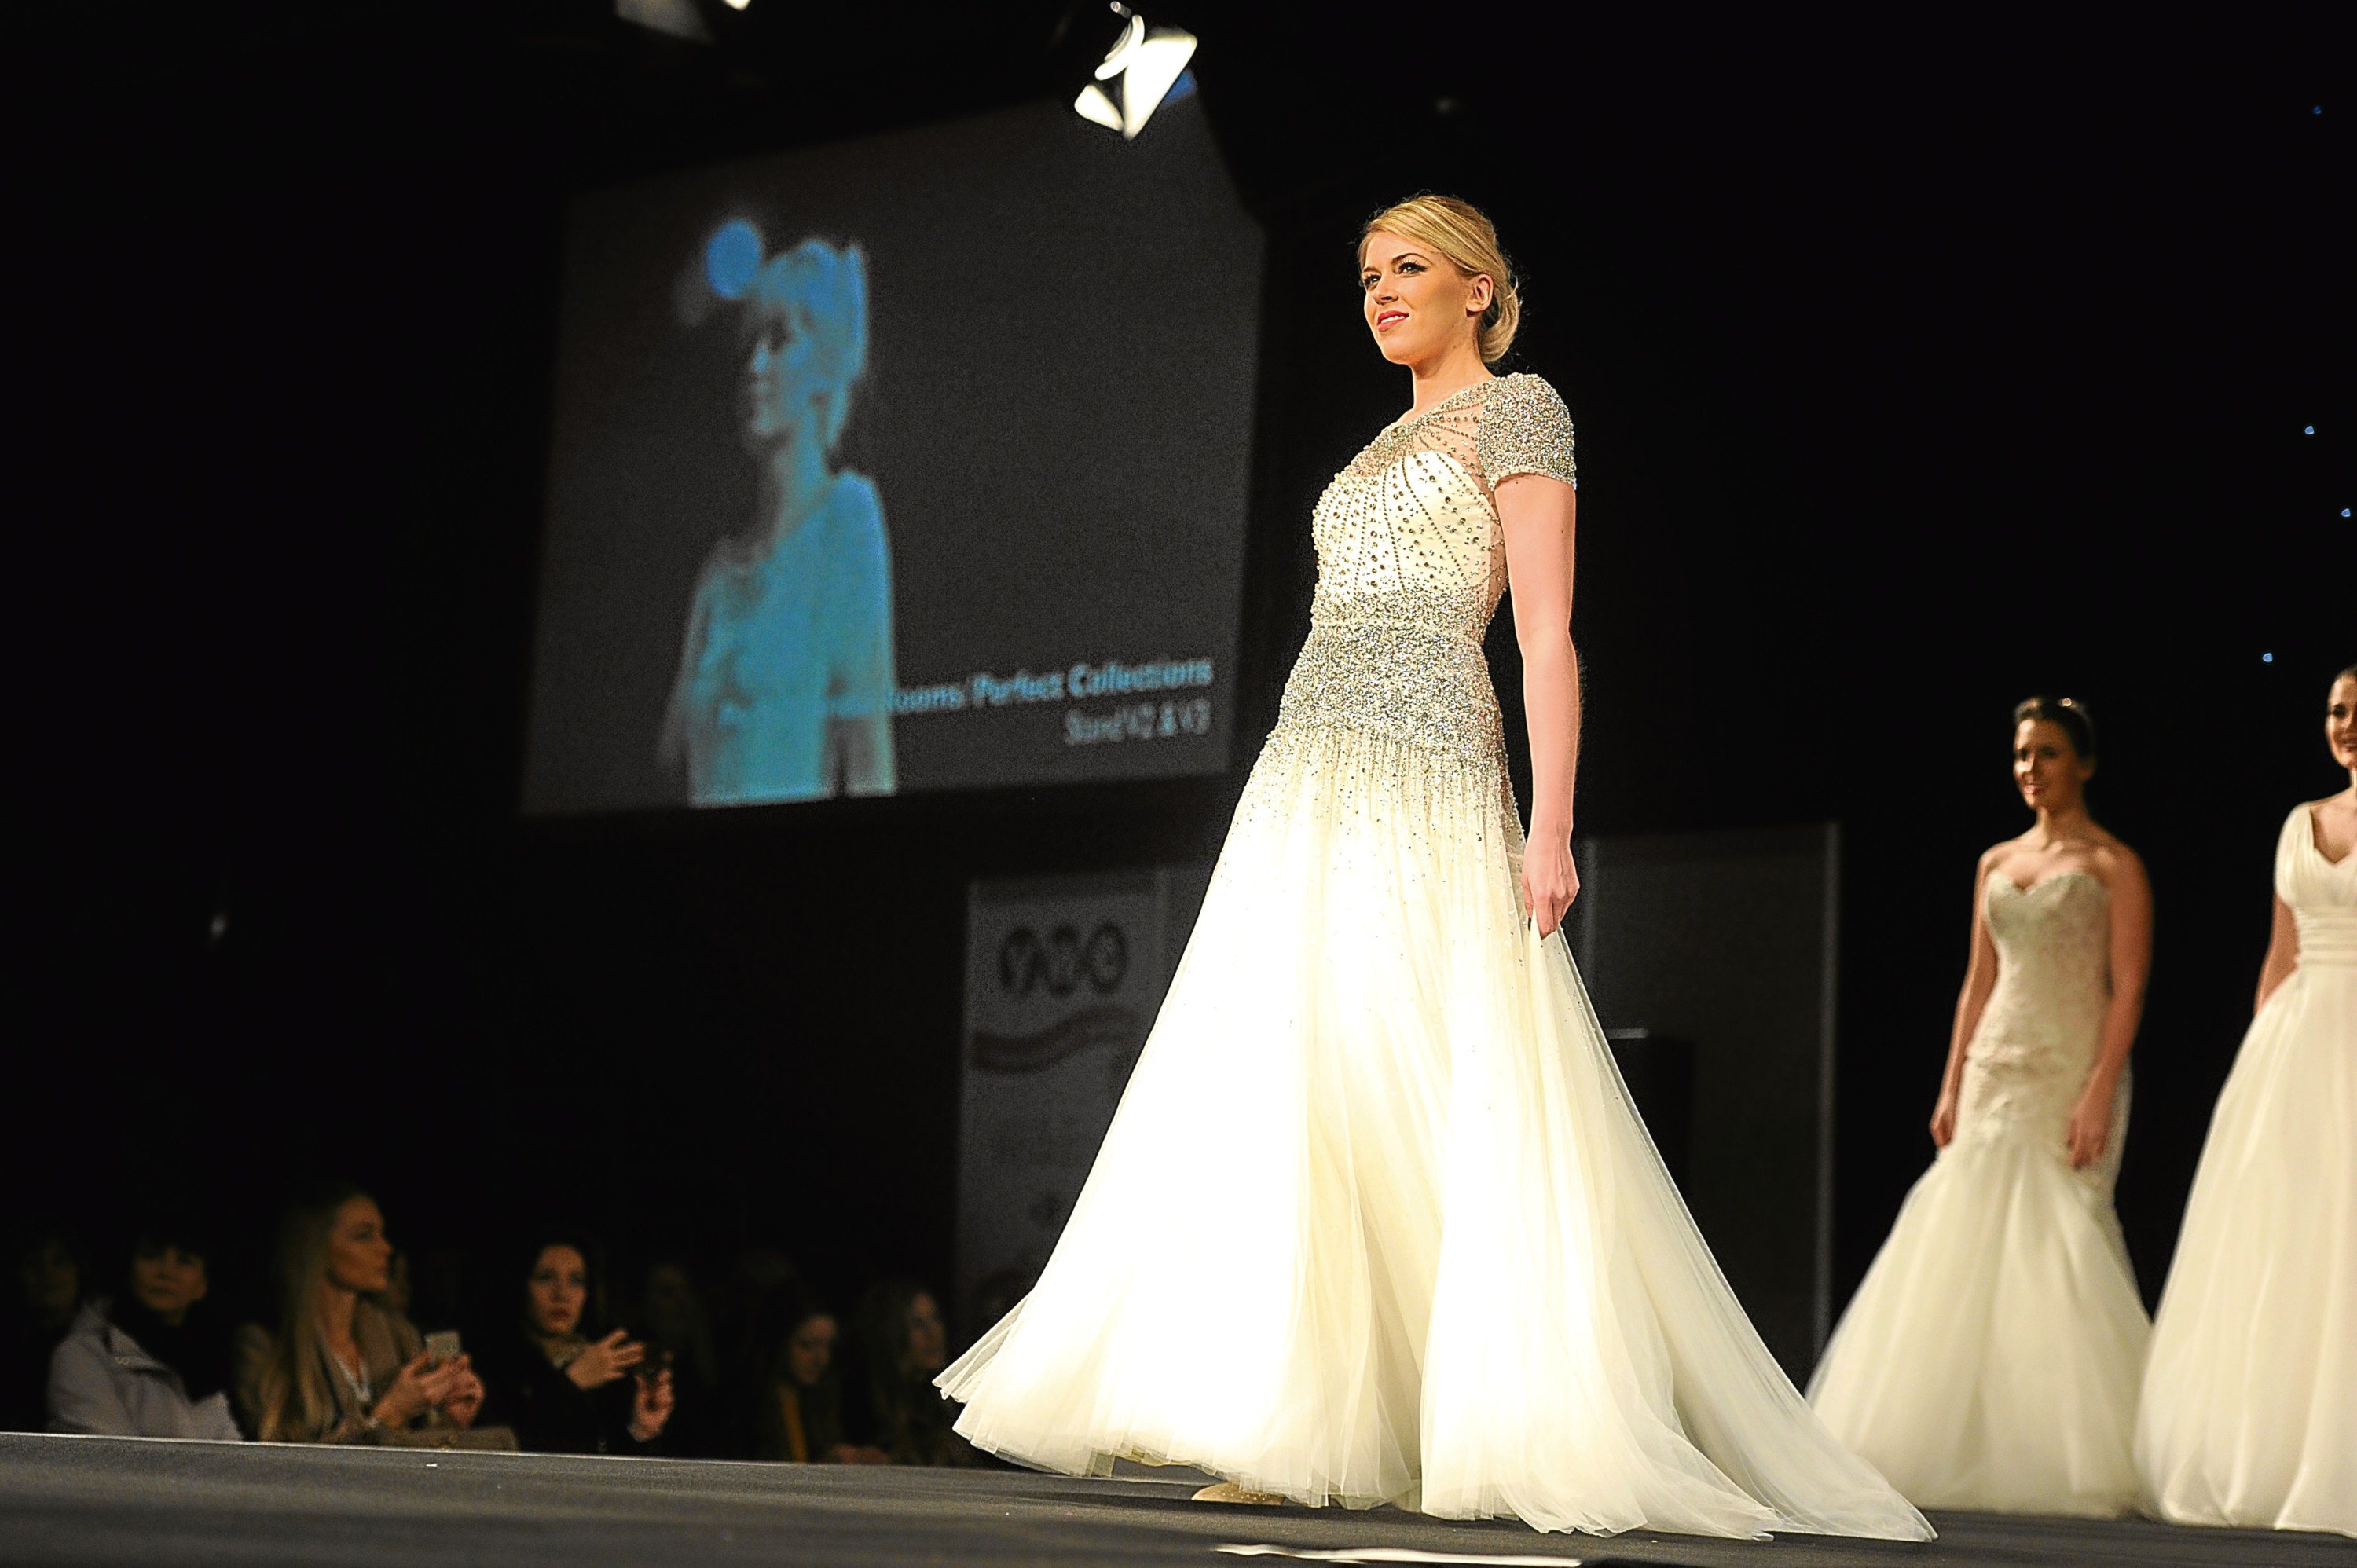 Your Wedding Exhibition will feature over 200 first-time and returning exhibitors from across Scotland.